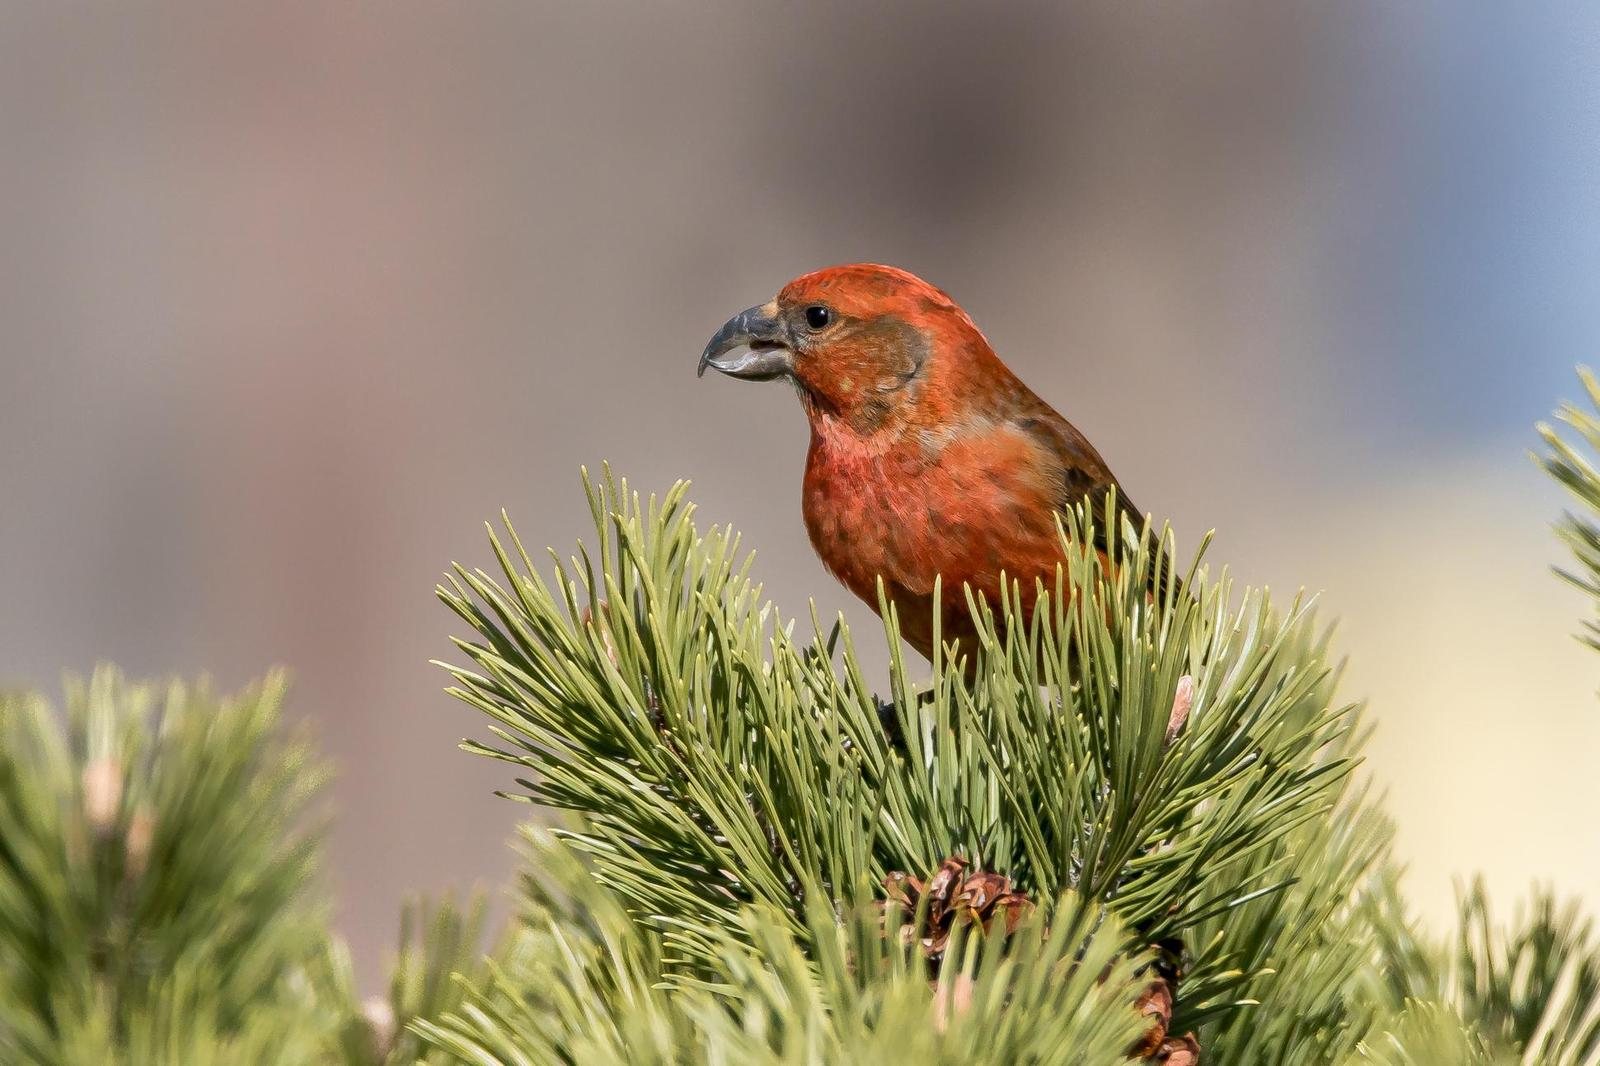 Red Crossbill Photo by Gerald Hoekstra